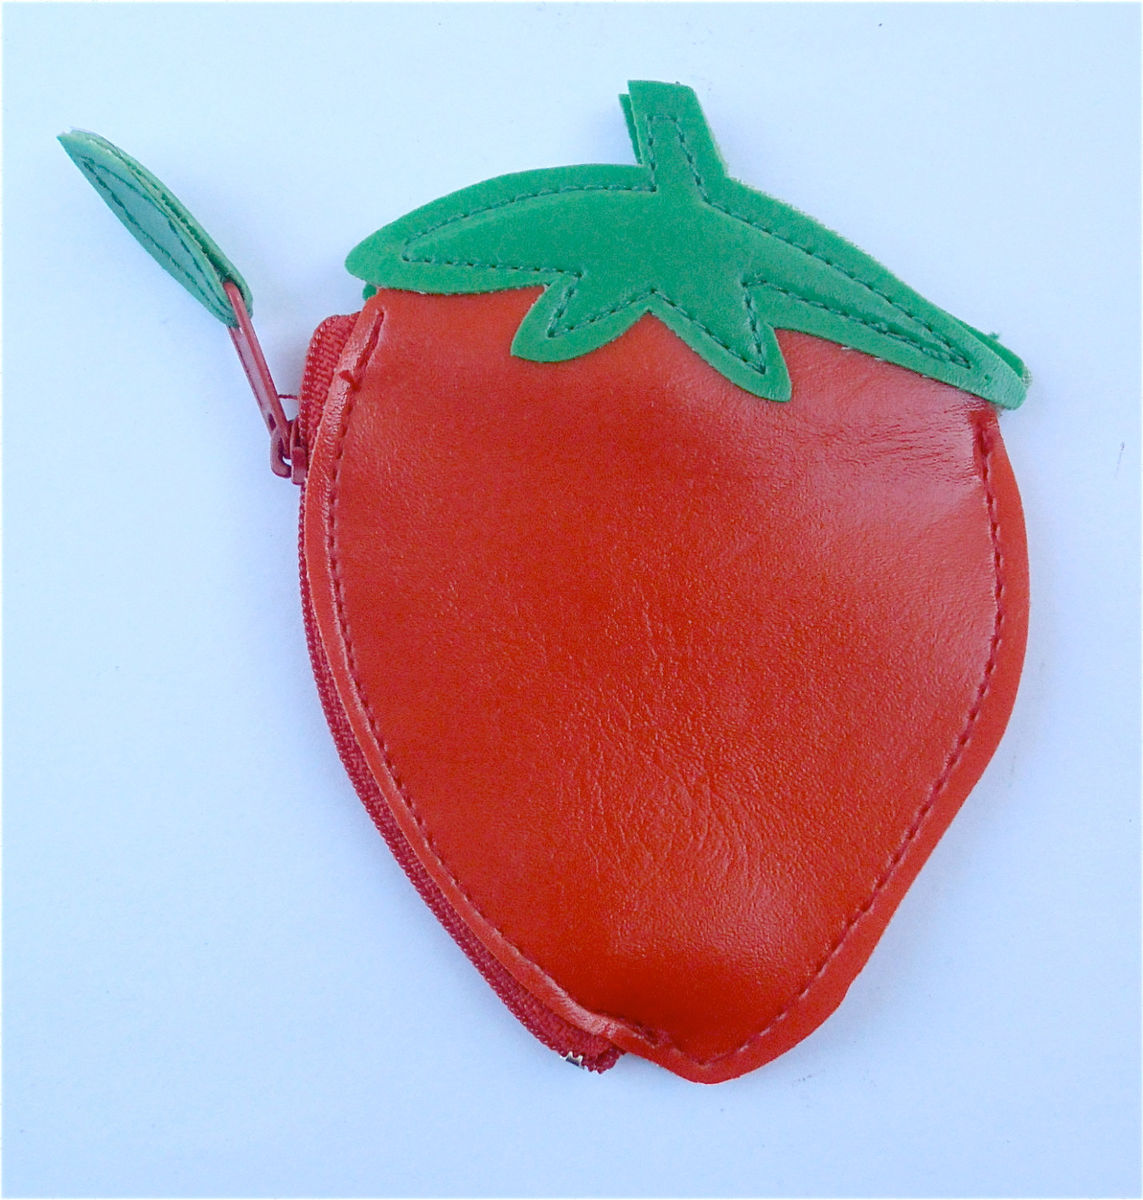 Vintage Strawberry Purse Strawberry Coin Purse Strawberry Shape Purse Fruit Coin Purse Strawberry Wallet Strawberry Purse Kawaii Wallet - product images  of